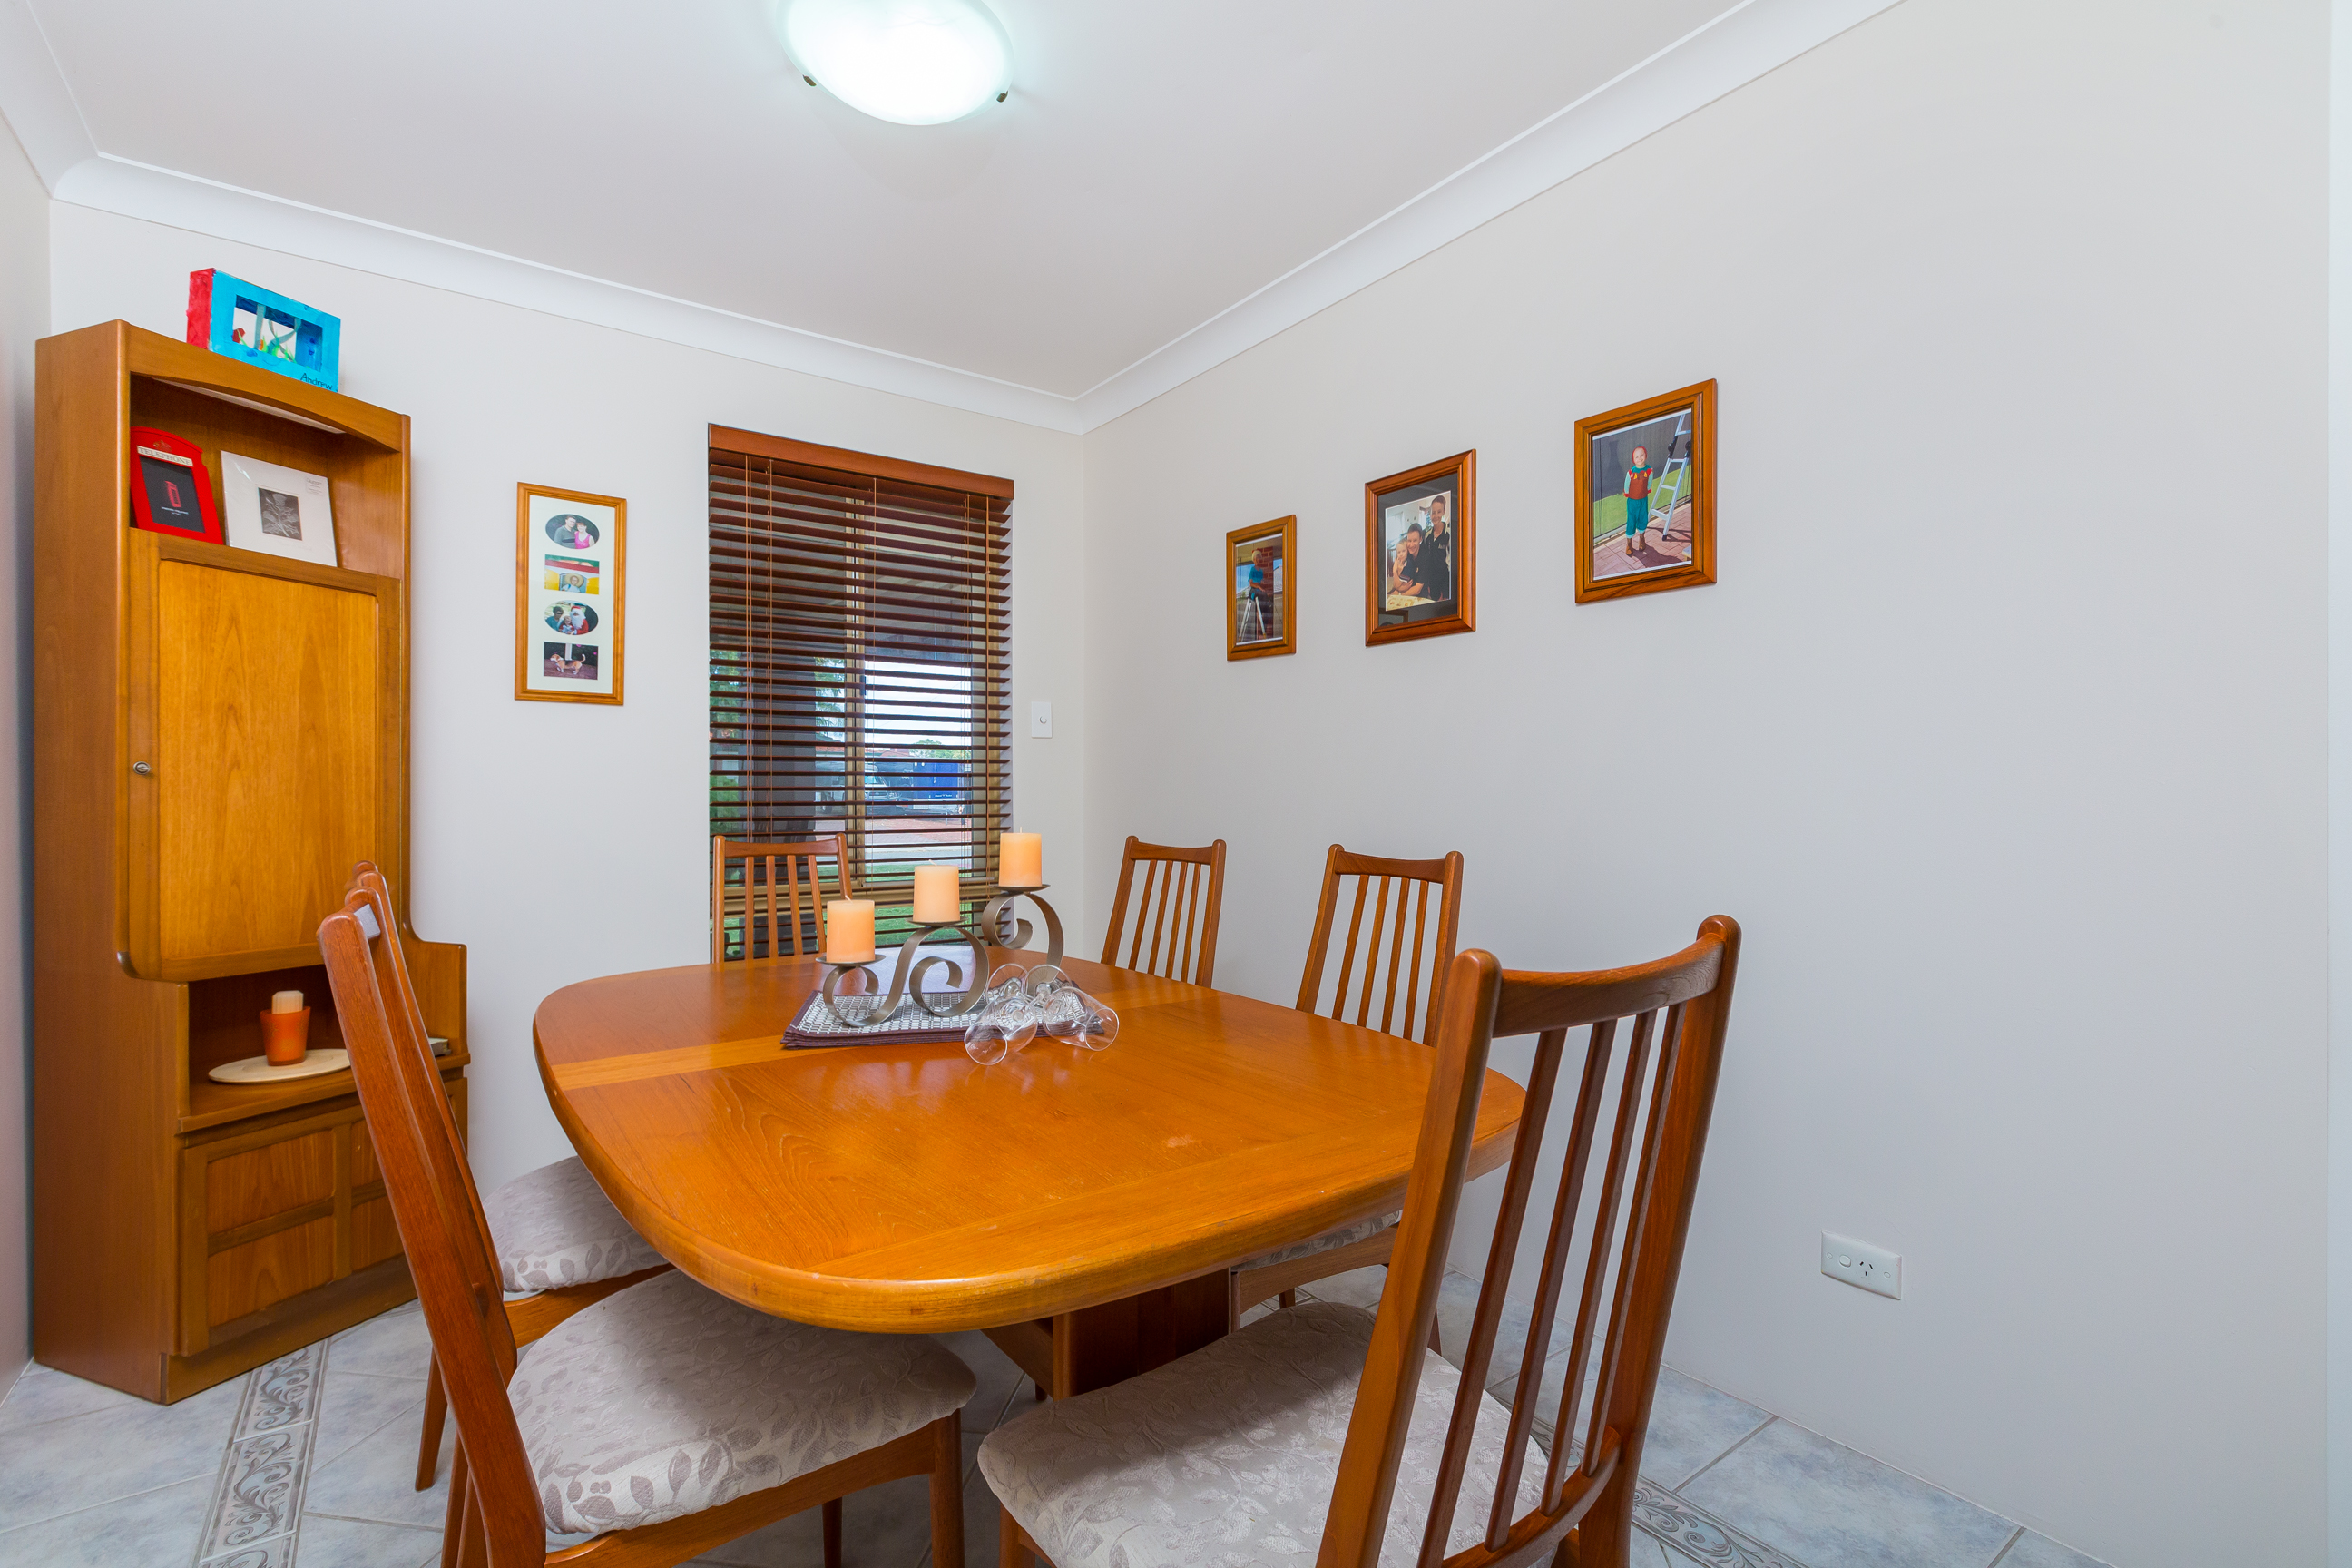 Property for sale in SEVILLE GROVE, 12 Snook Place : Attree Real Estate